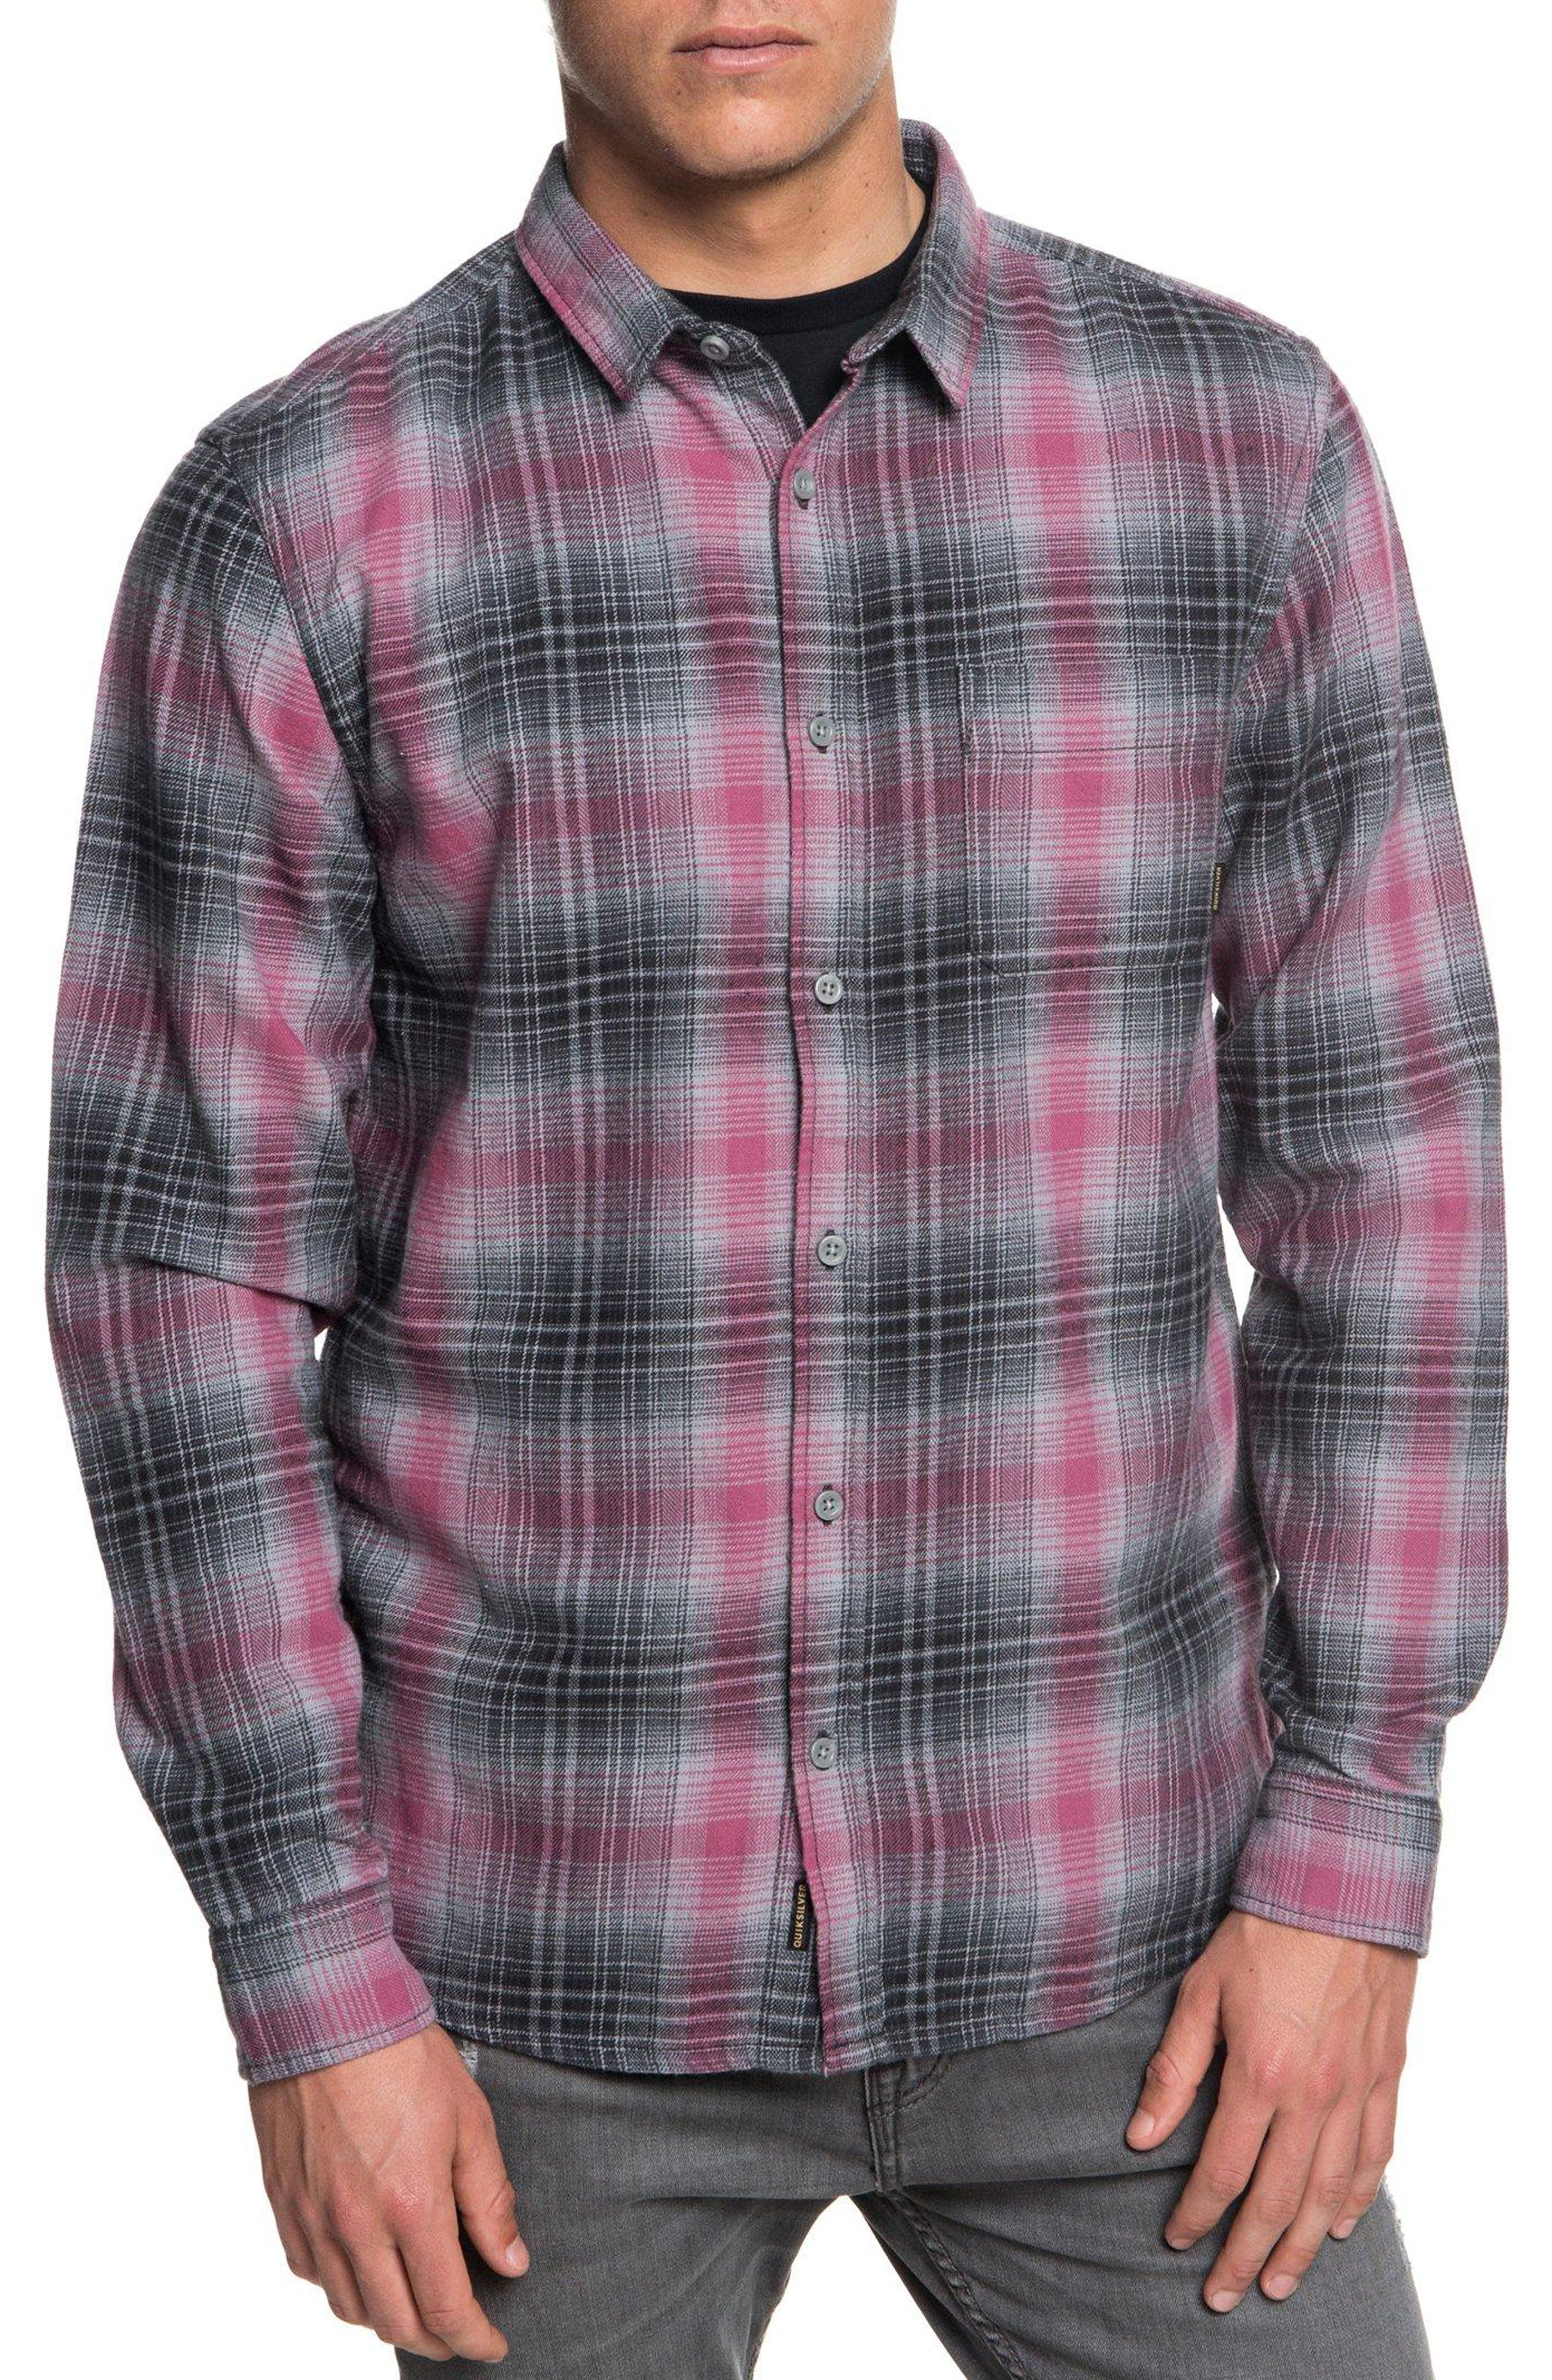 Fatherfly Flannel Shirt,                         Main,                         color, TARMAC FATHERFLY CHECK